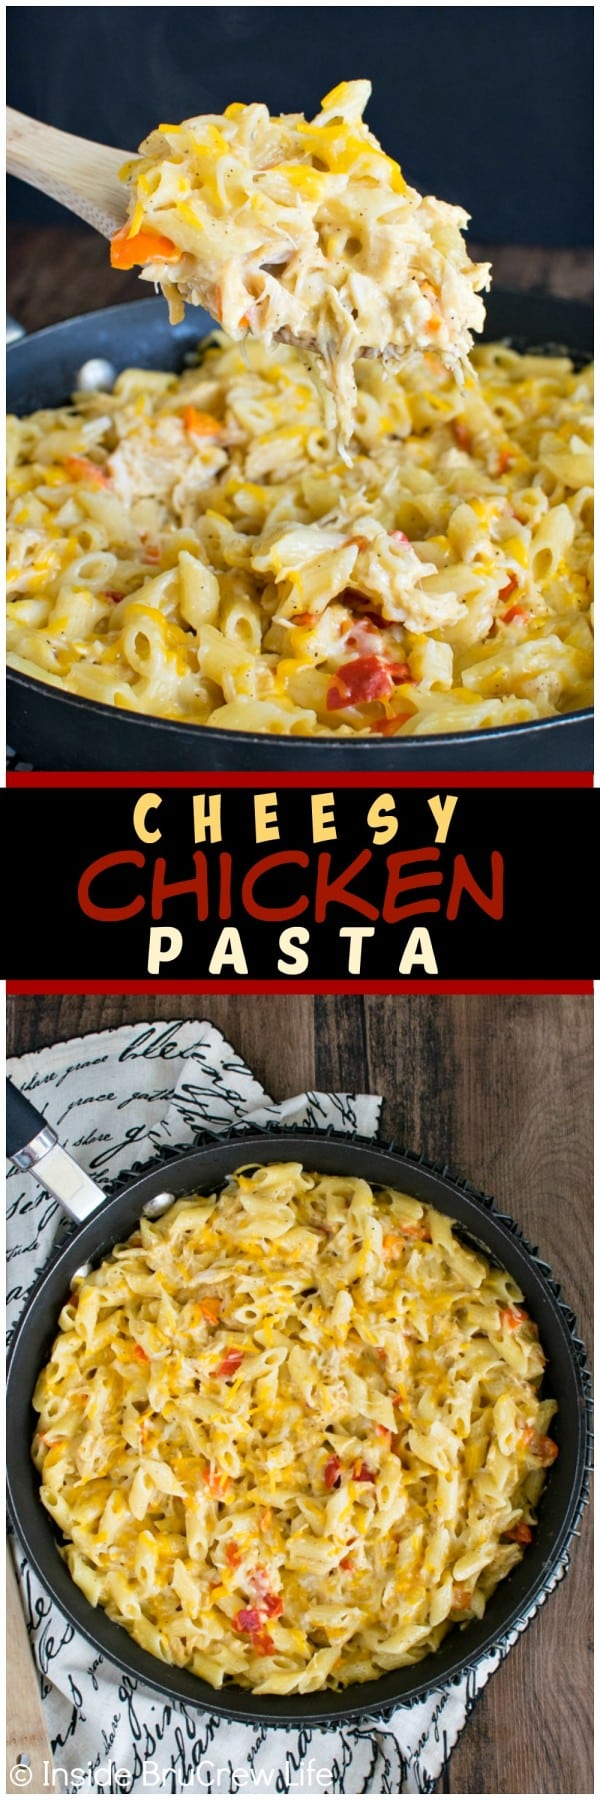 Cheesy Chicken Pasta - gooey cheese and pasta in under 30 minutes gets smiles from everyone at the dinner table. Make this easy recipe for busy nights! #pasta #skillet #30minutemeal #chicken #cheese #dinner #recipe